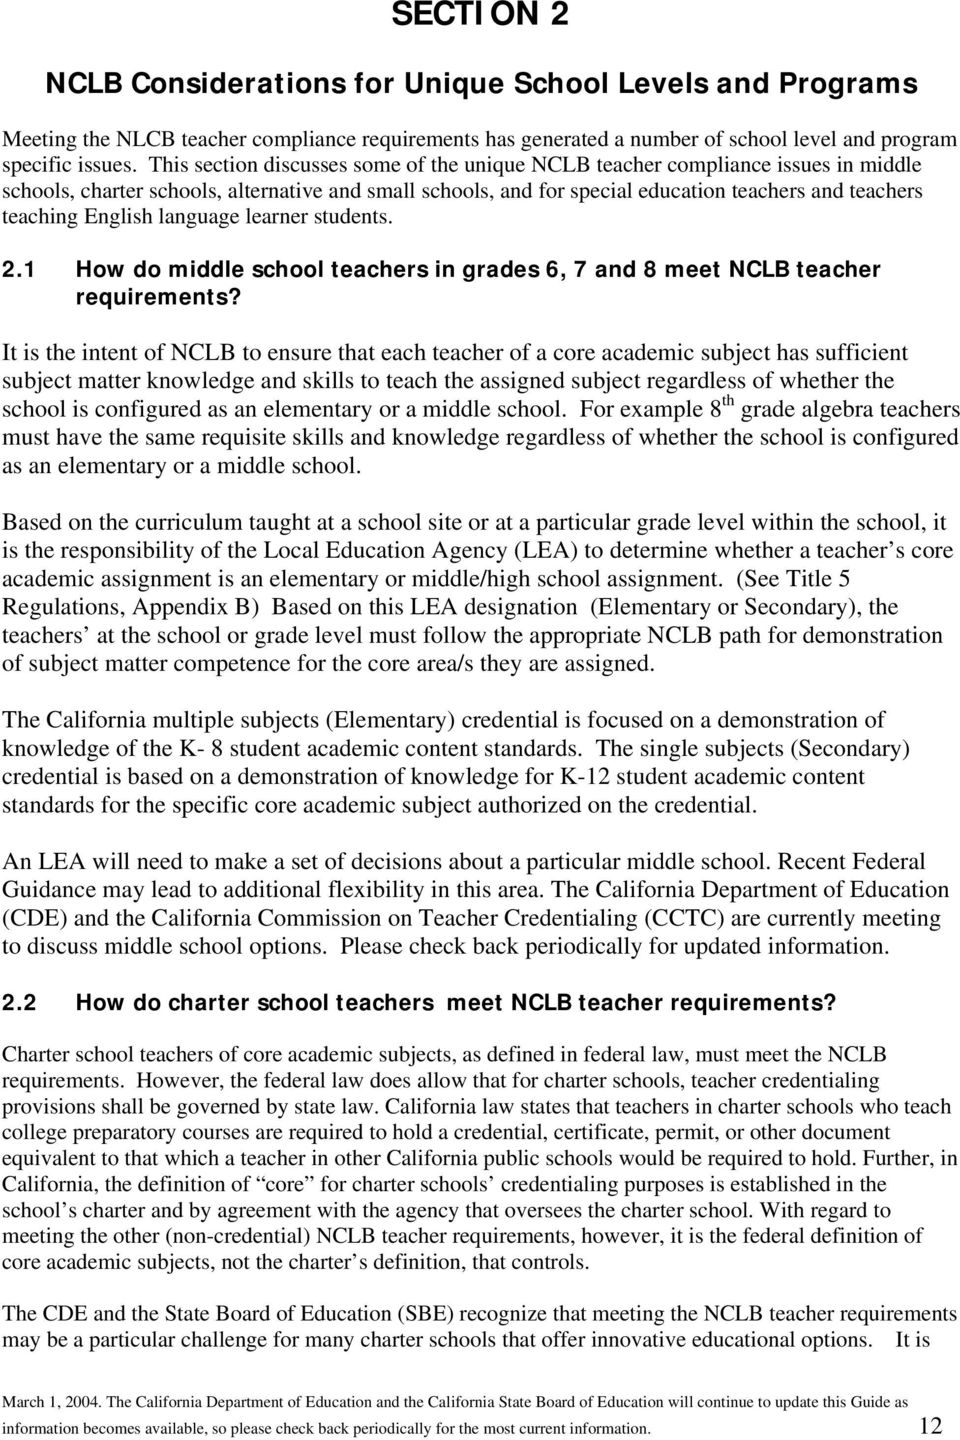 English language learner students. 2.1 How do middle school teachers in grades 6, 7 and 8 meet NCLB teacher requirements?